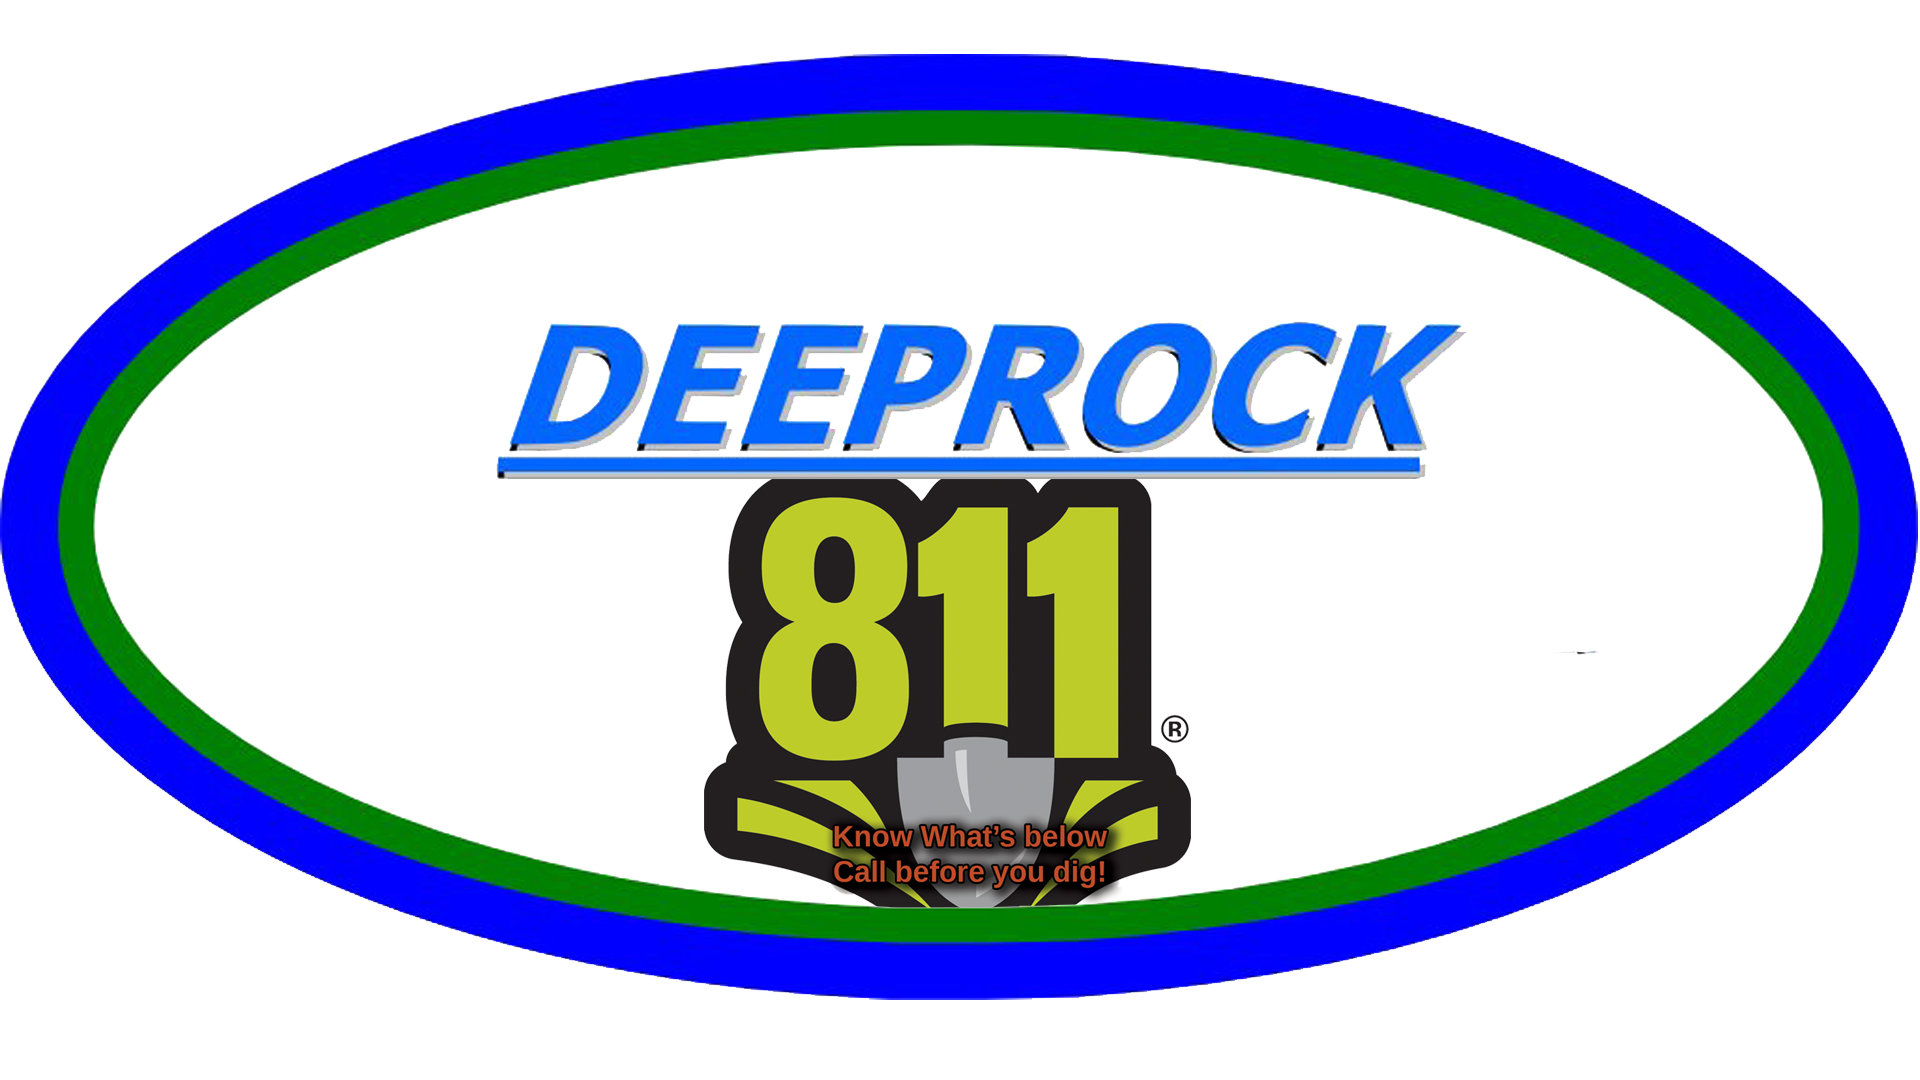 Deeprock reminds you to call 811 before you dig...